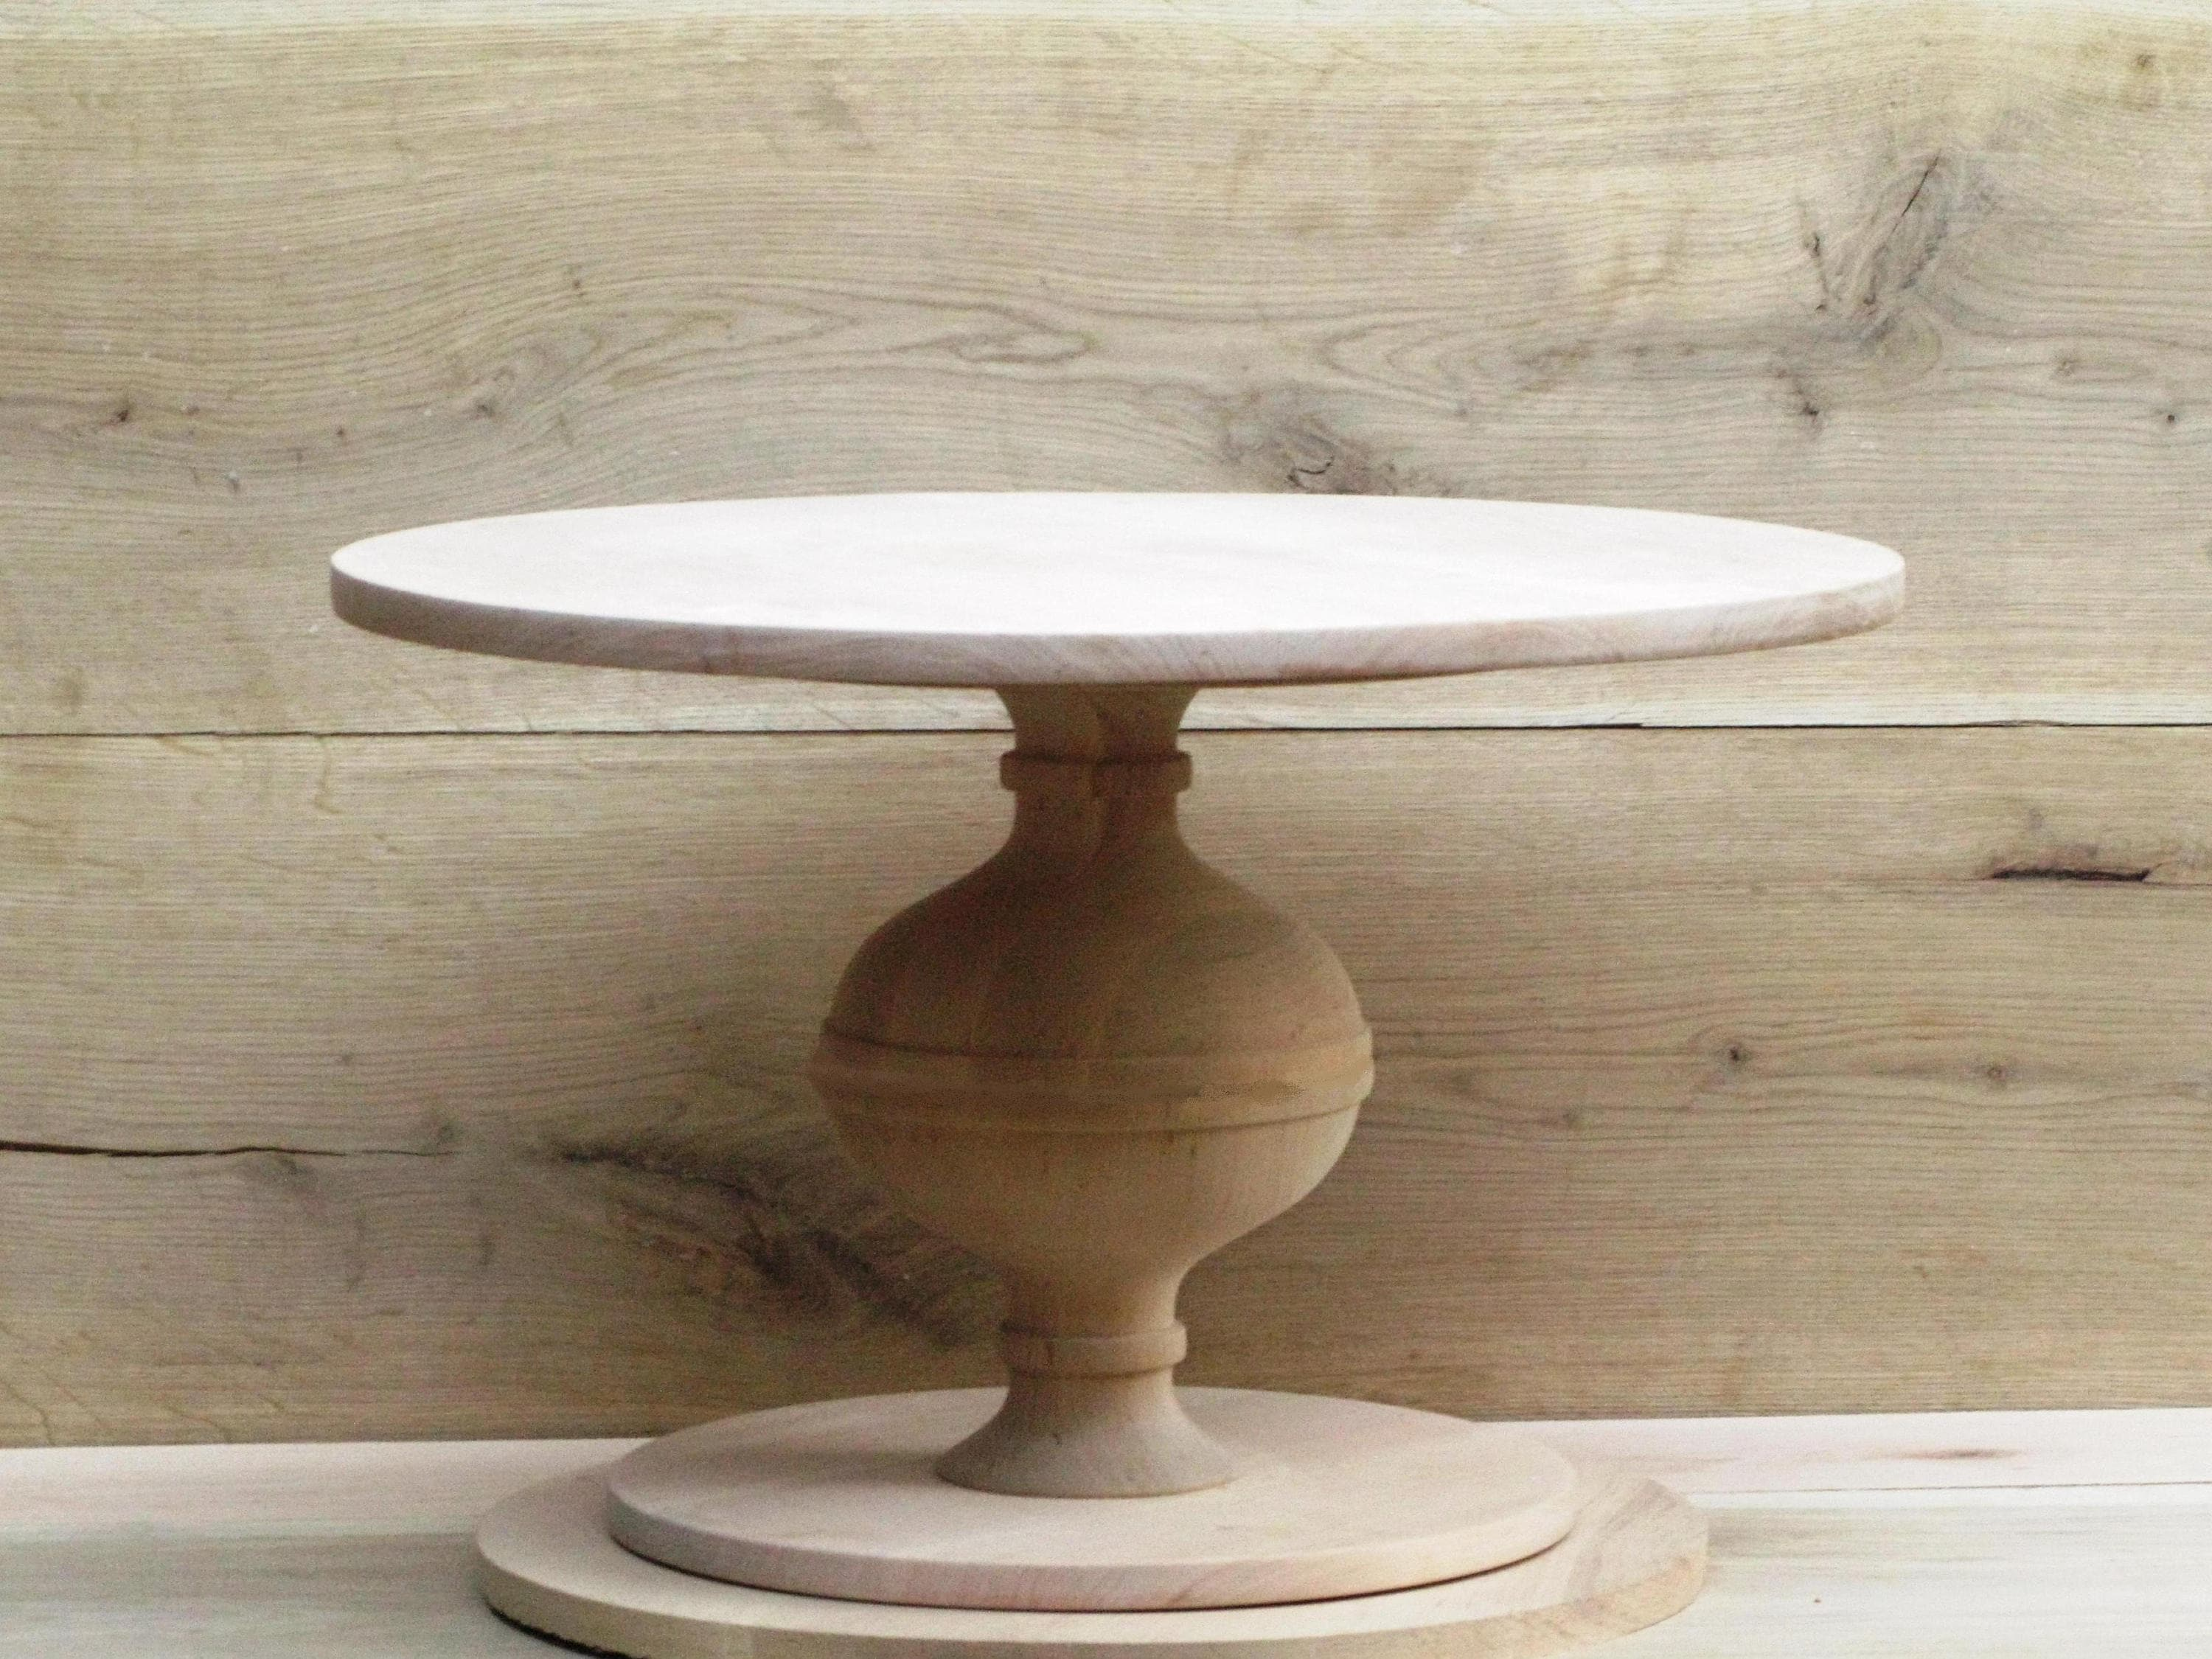 Rustic Wedding Wood Cake Stand: Custom Rustic Wedding Cake Stand Sturdy Wood Cake Stand For